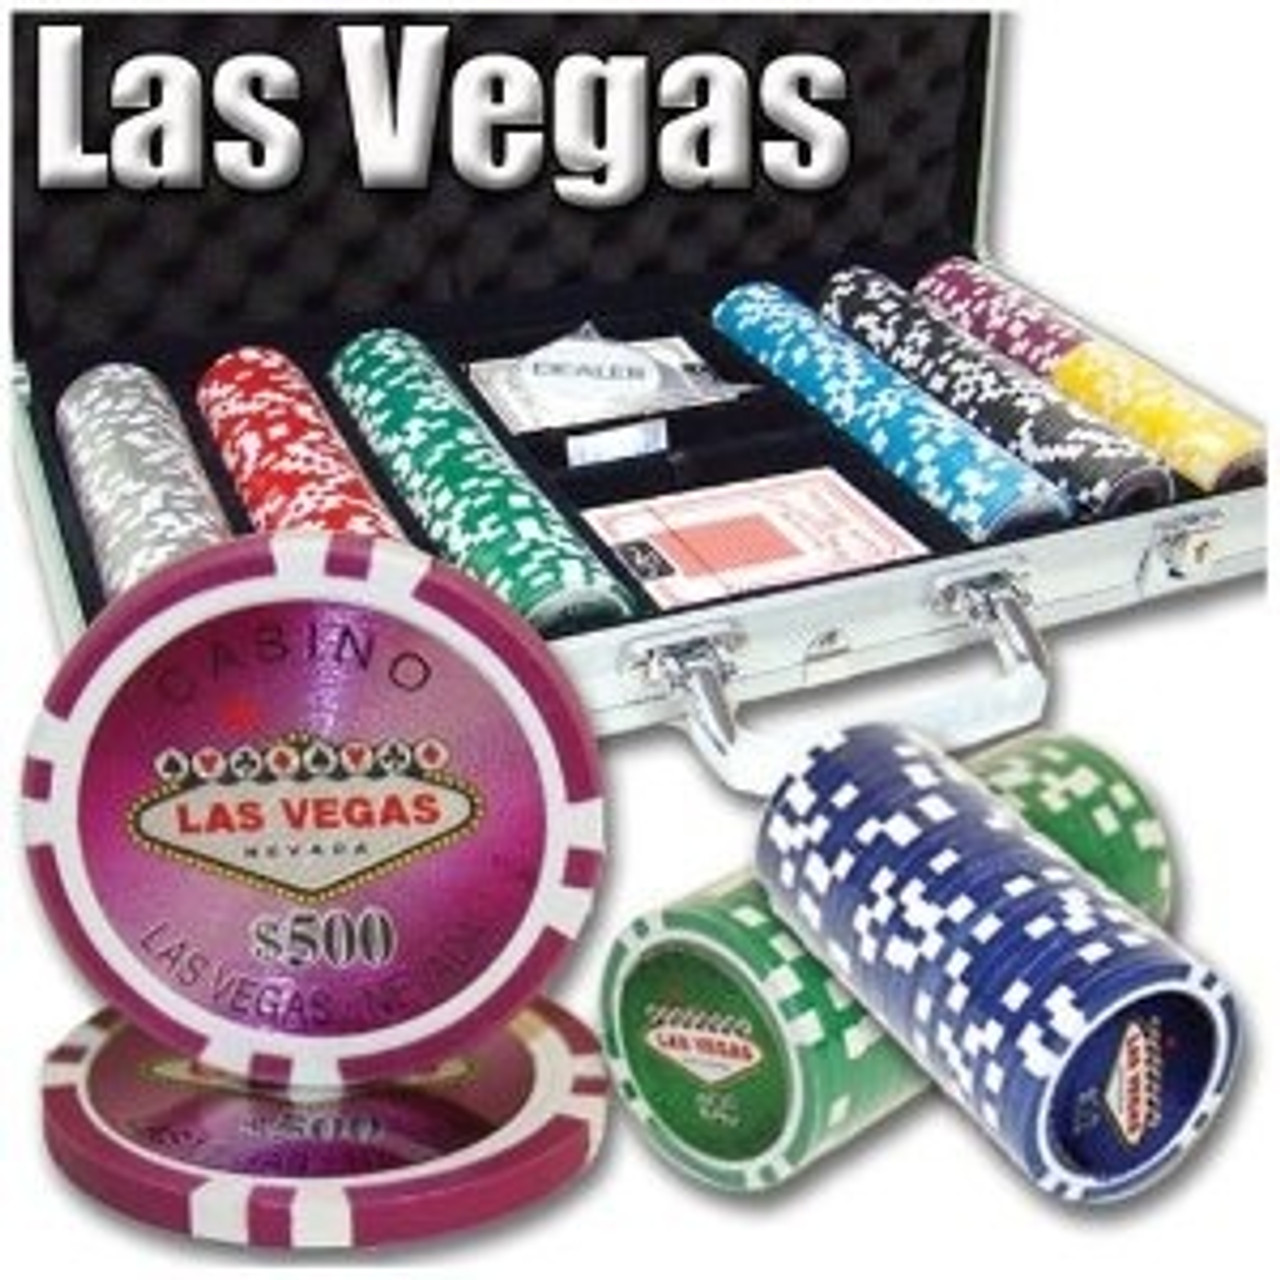 Poker Chip Set Las Vegas Casino 300pc 11.5g with Case & FREE OFFER